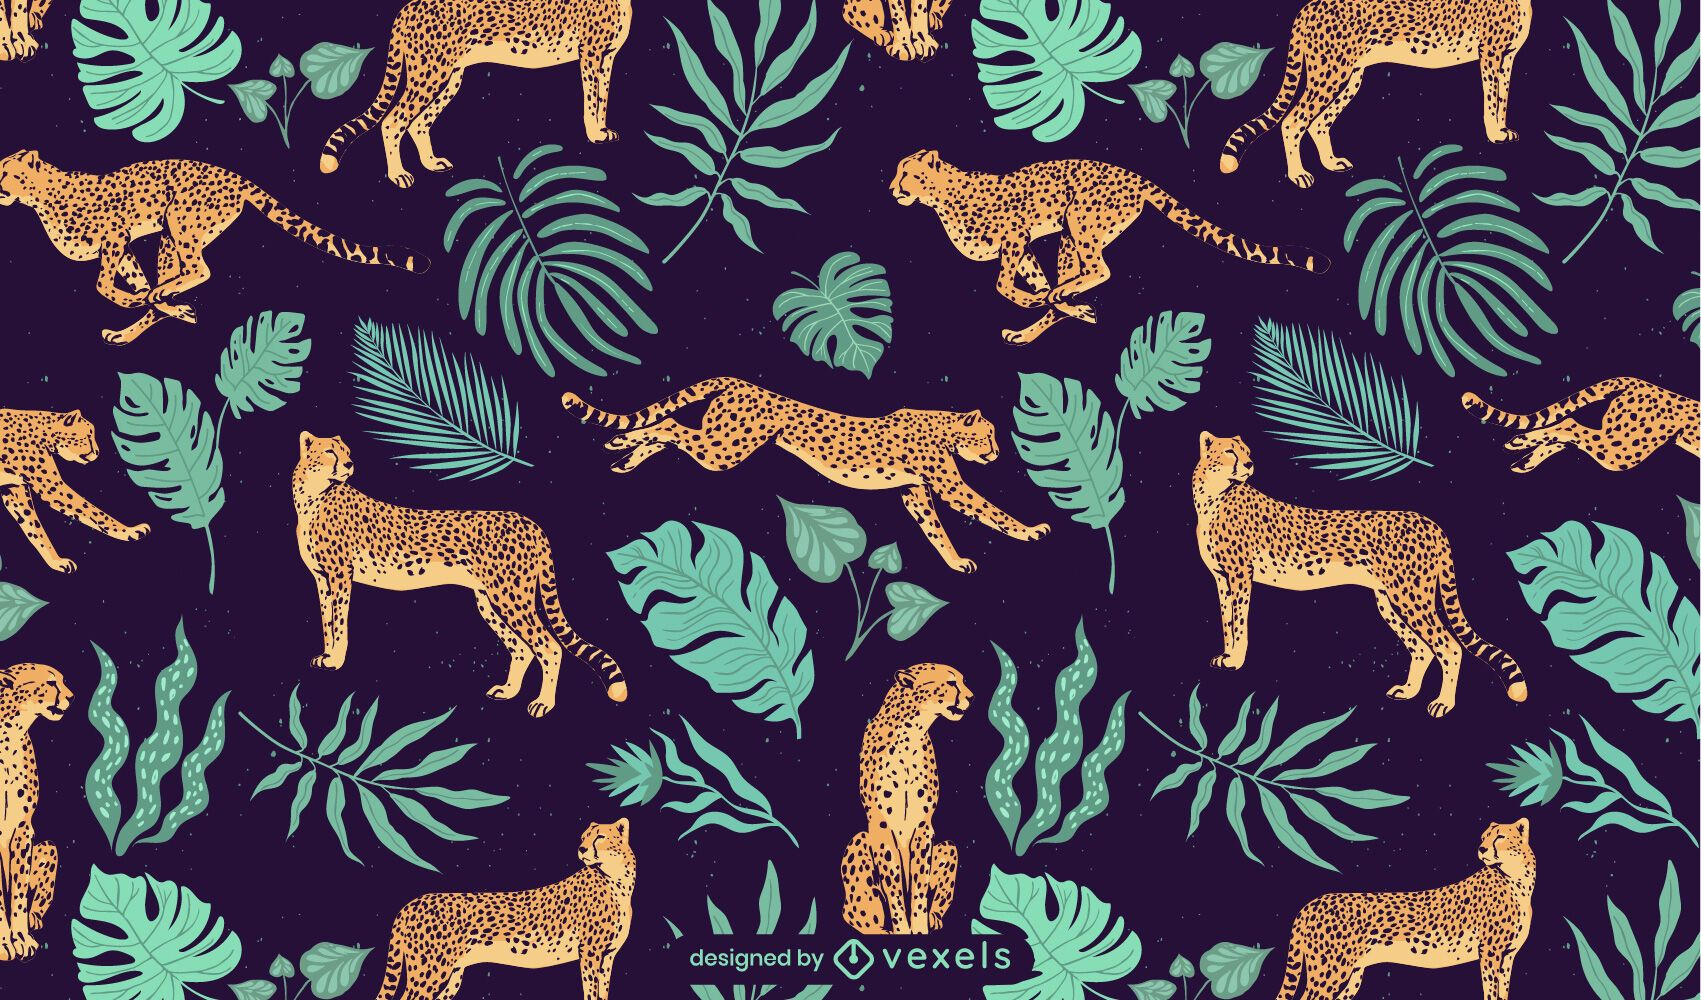 Cheetah and leaves tropical pattern